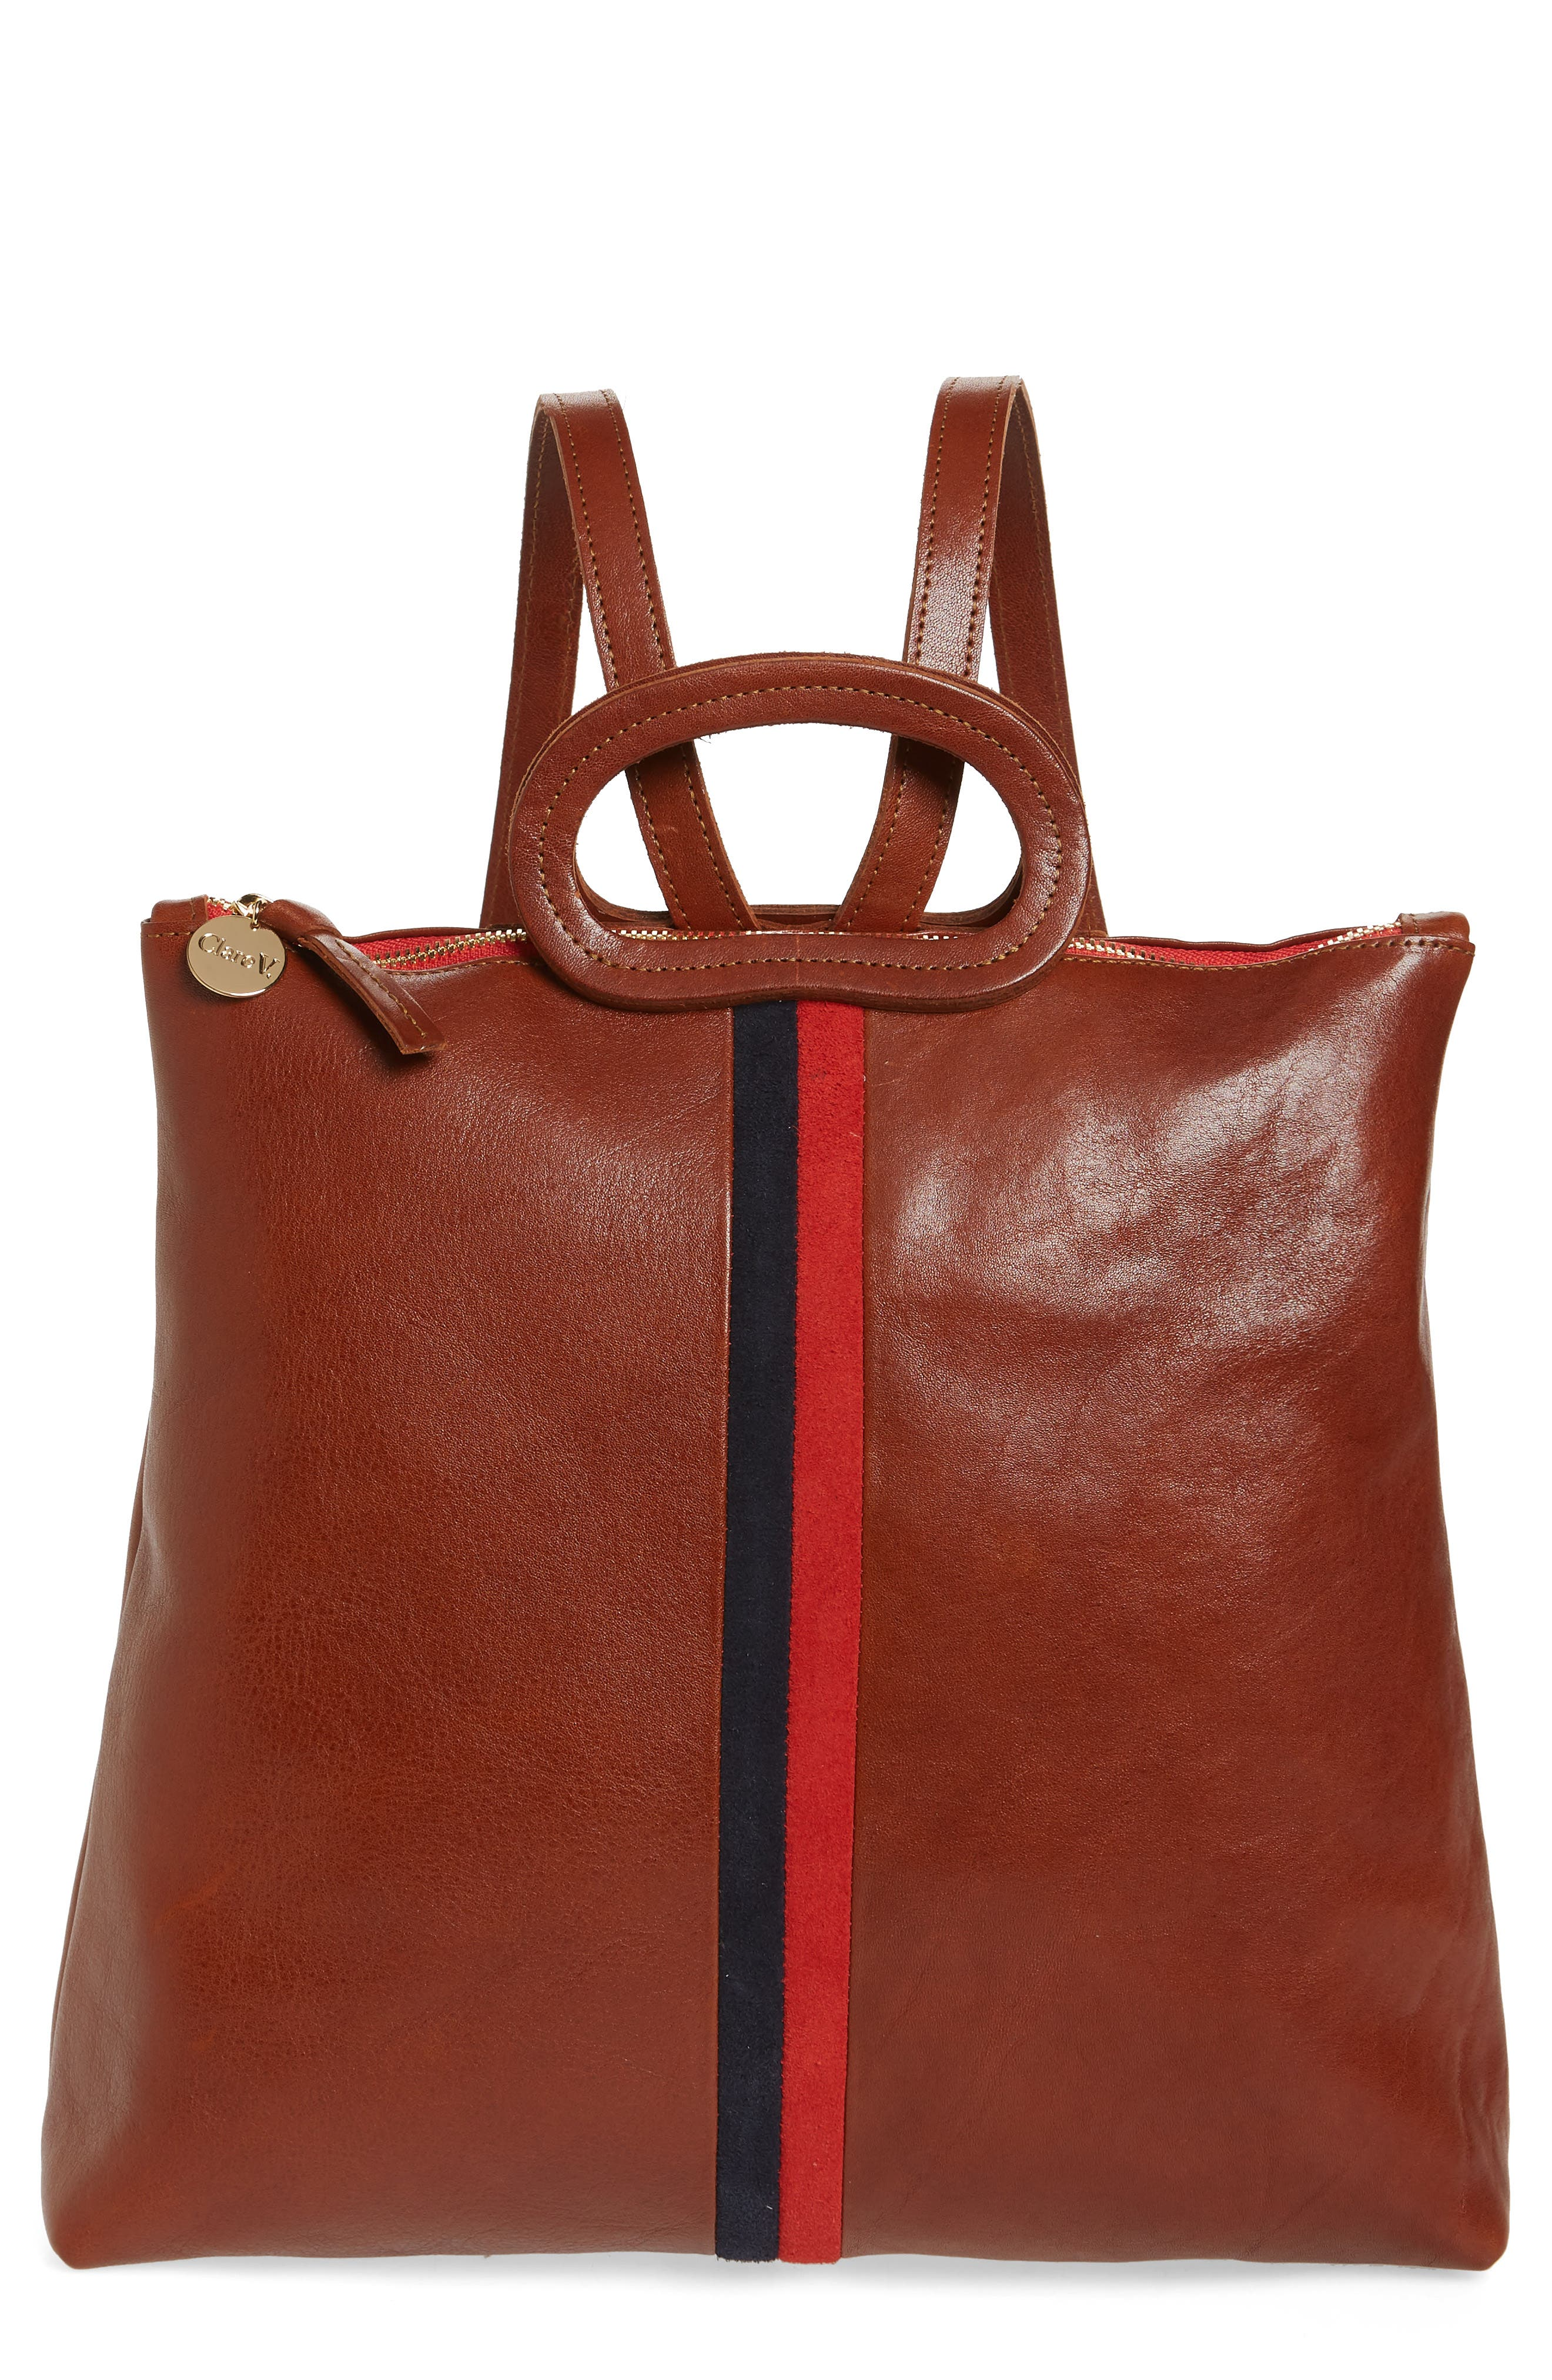 CLARE V Marcelle Leather Backpack - Brown in Brown Rustic With Navy/ Red